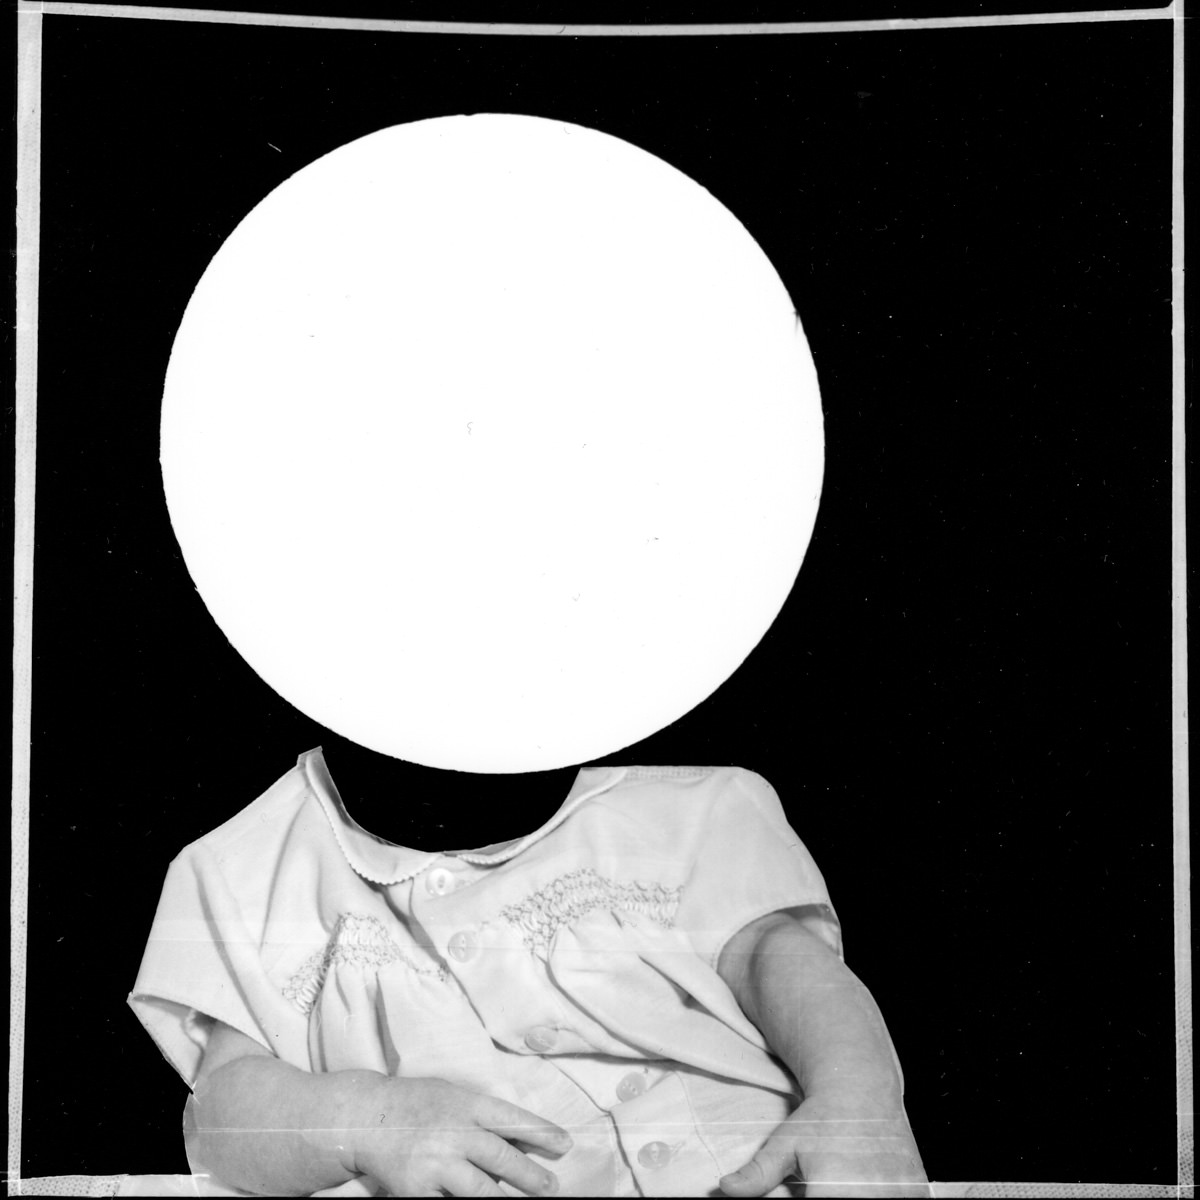 """""""0087"""" from the series The Children of Mars, by William Mokrynski"""